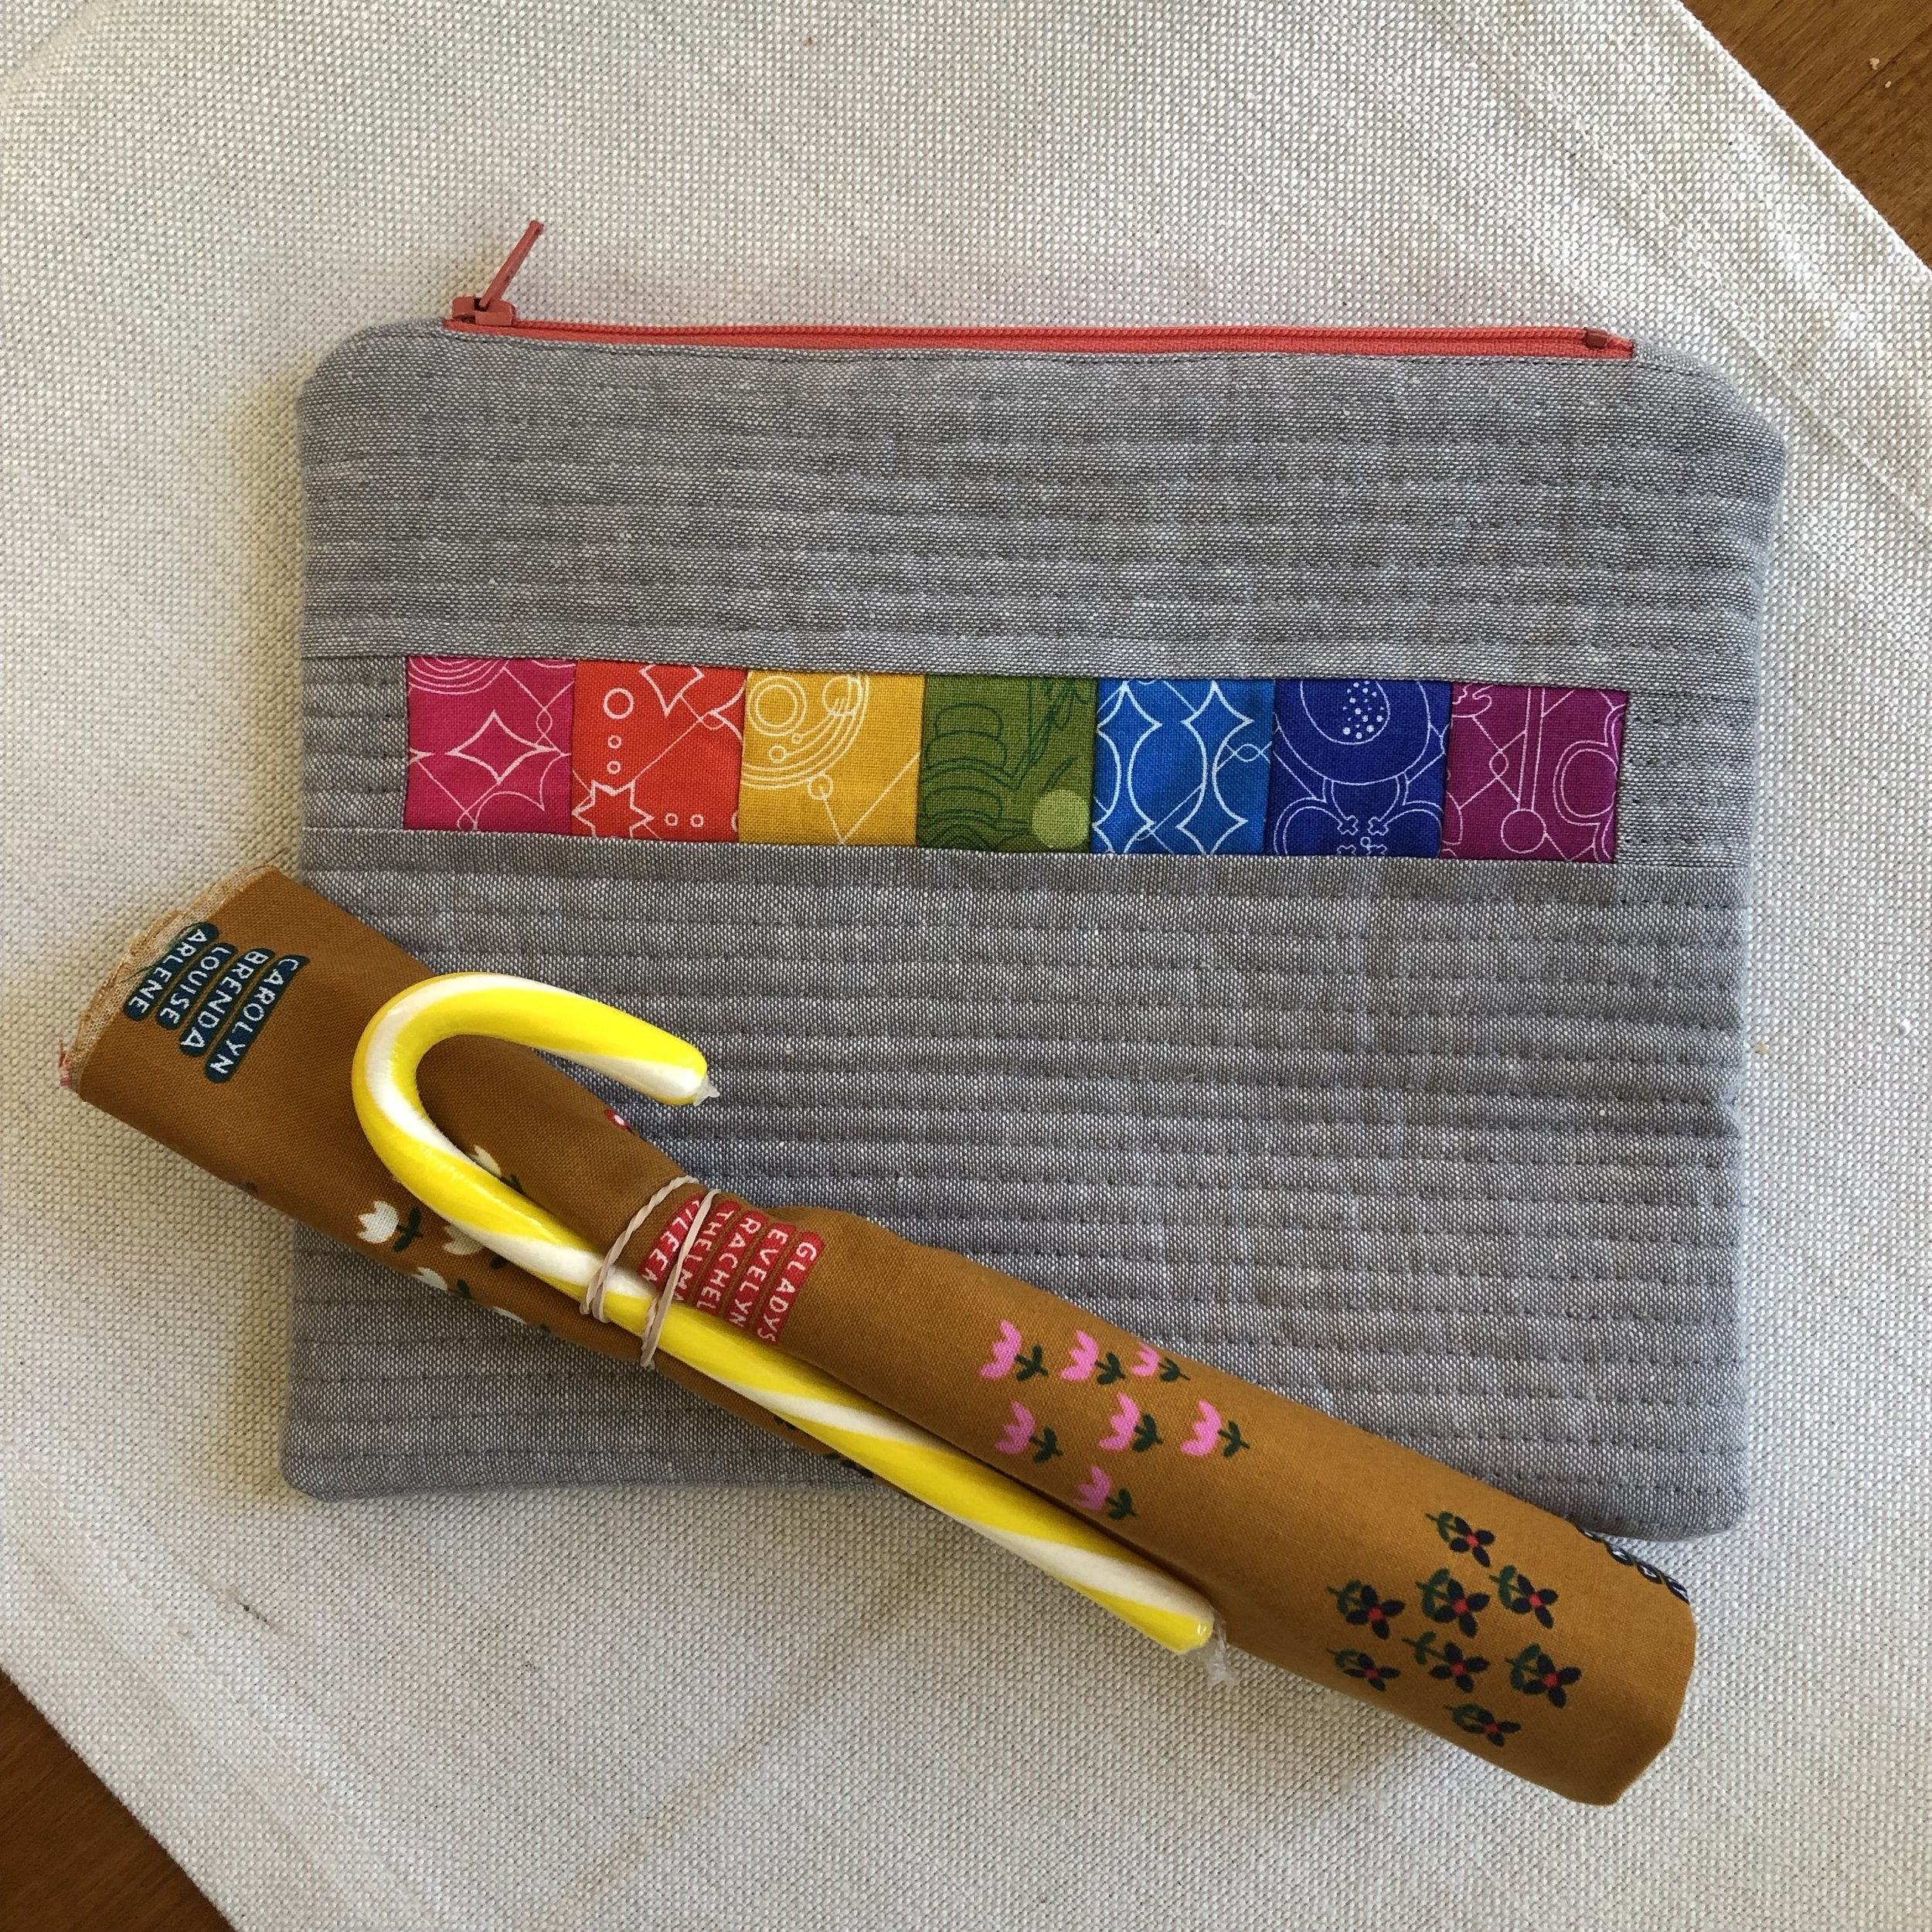 The lovely pouch made by Yanick